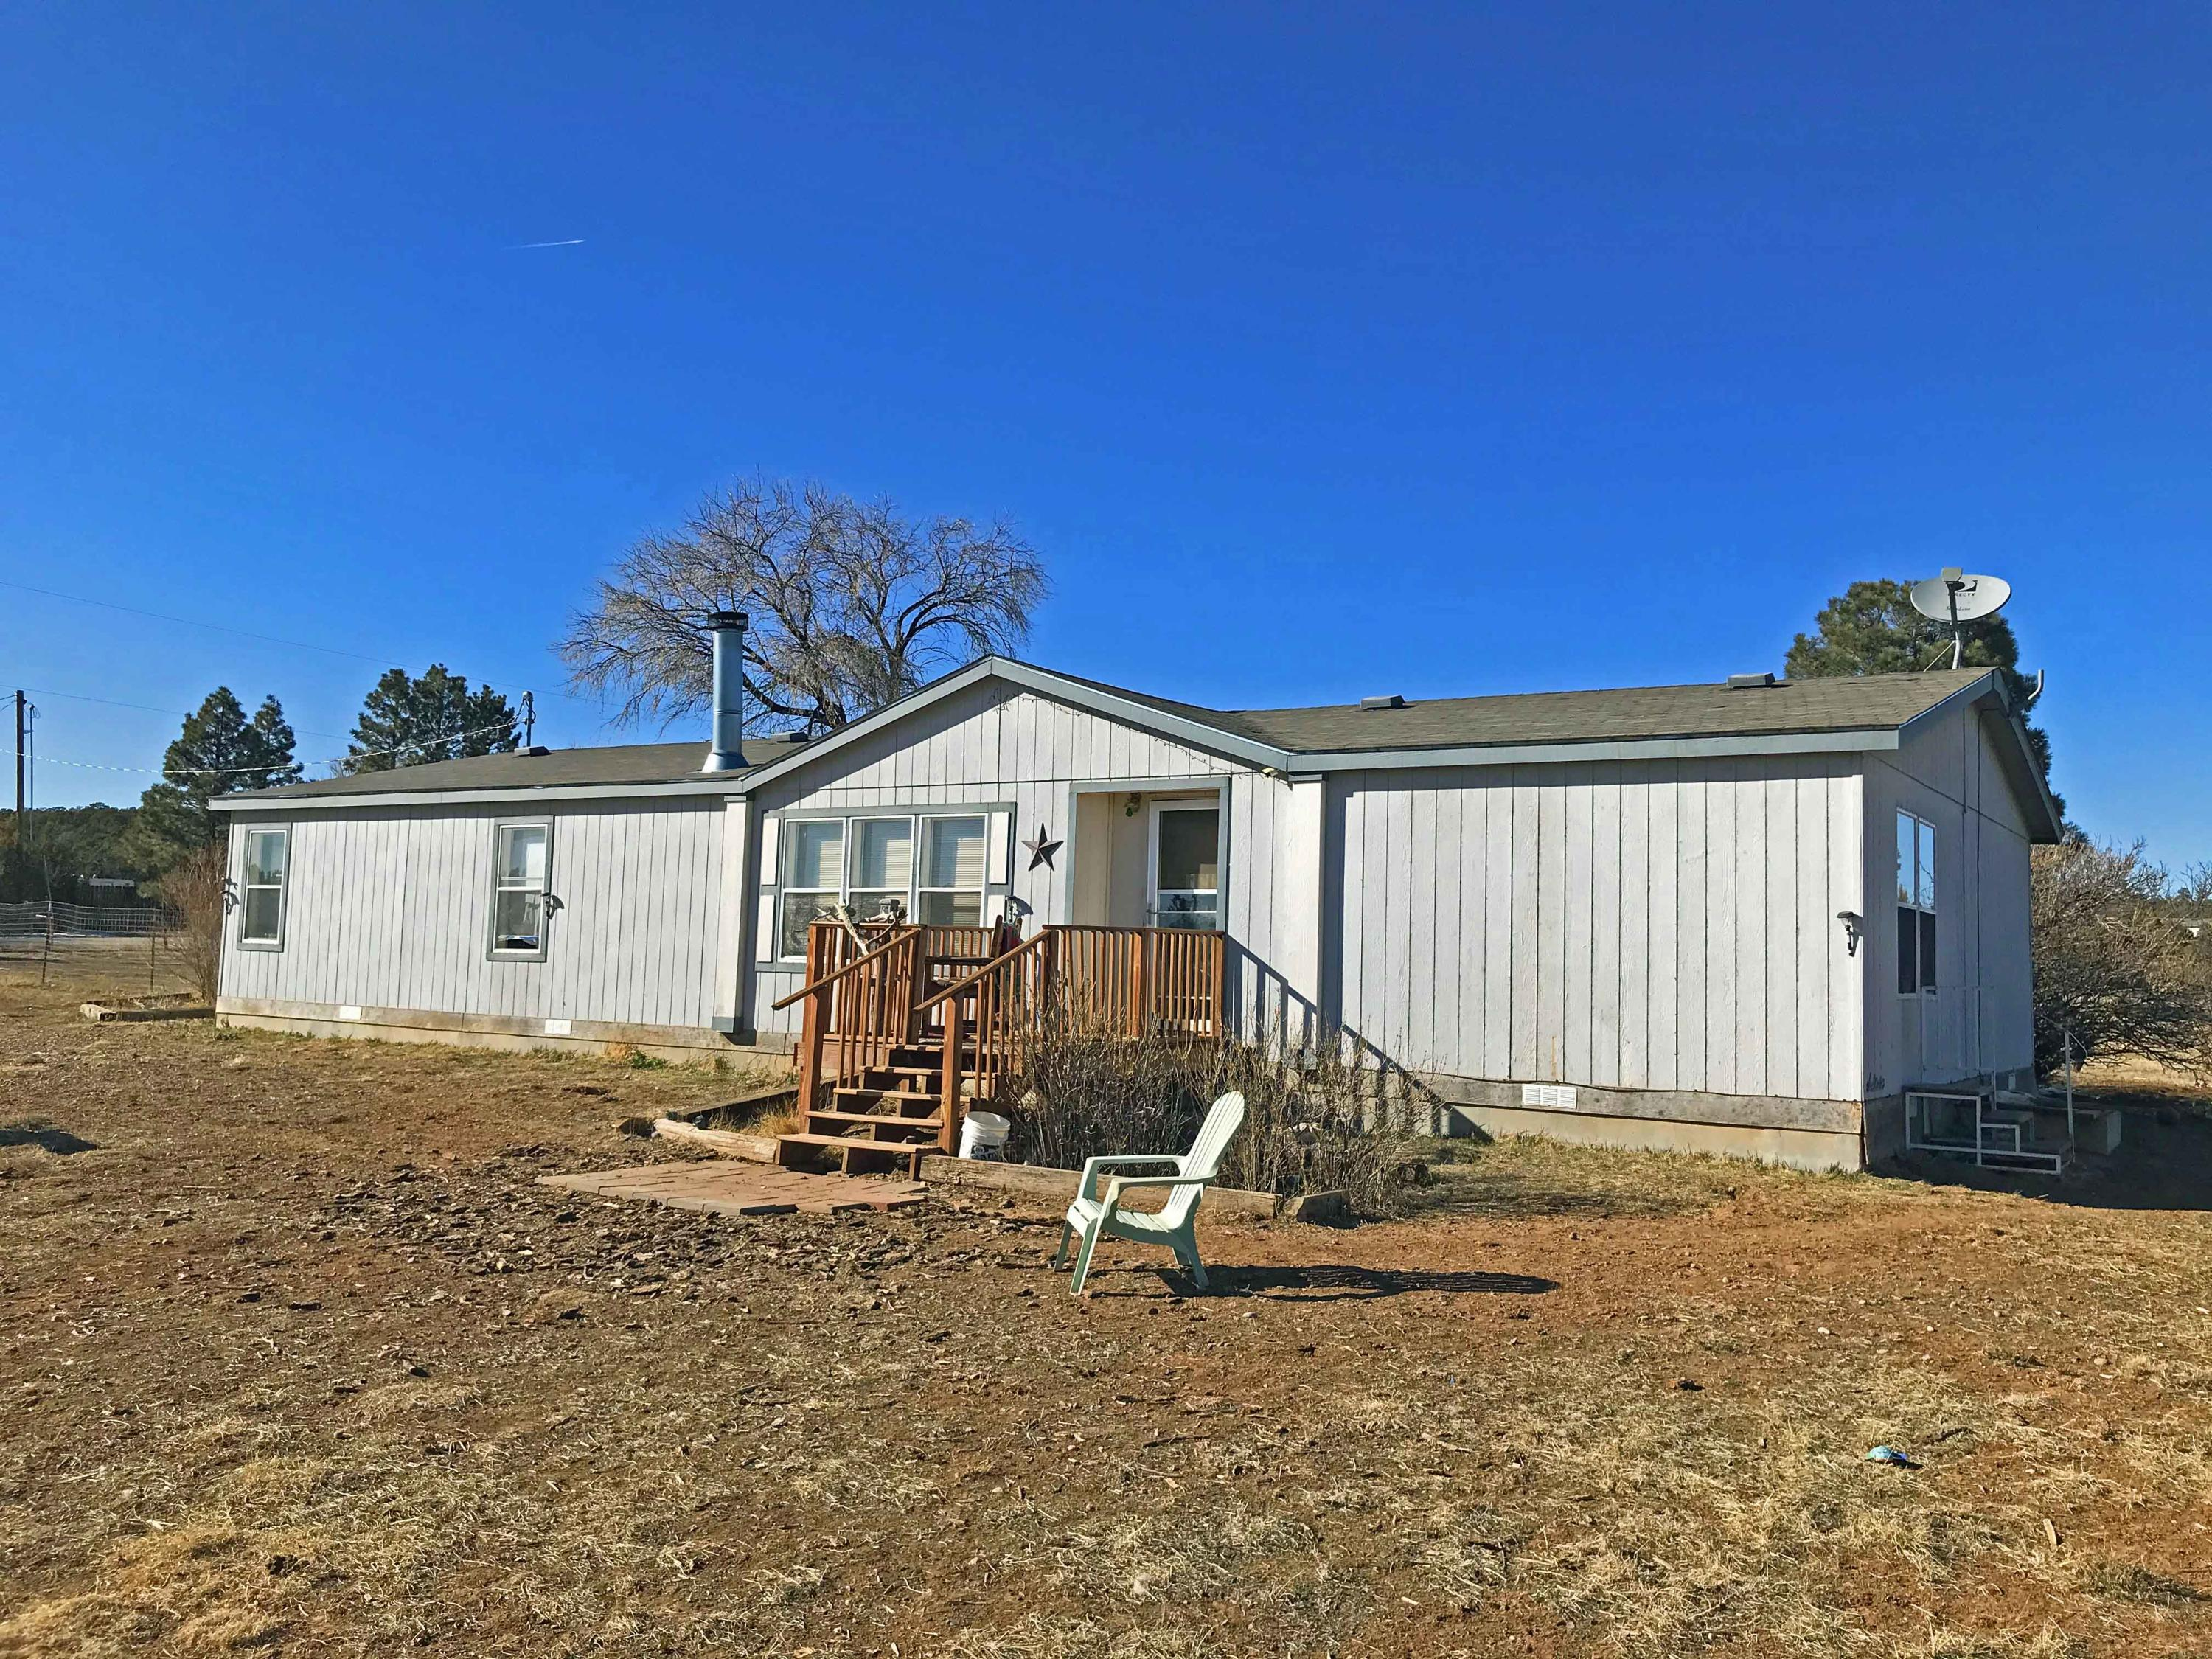 Here's a great place on 4 level acres in the East Mountains!  This 2006, 4 bedroom, 2.5 bath manufactured home is built for Wyoming winters with extra insulation, double windows and 2x6 construction.  It has refrigerated air as well!  The land is fully fenced and includes a 30x40 metal, 1,200sf garage/workshop that is fully insulated with 3/4 bath, a gas heater and evaporative cooler. Ceilings are 15' high and room for up to 4 vehicles. 500 gallon propane tank is owned.  200 amp electrical, well, and septic.  Fruit trees and additional storage sheds.  Needs new flooring, paint, etc. Property sold ''as-is'' condition and priced as such. If your looking for a great deal, come check this one out.